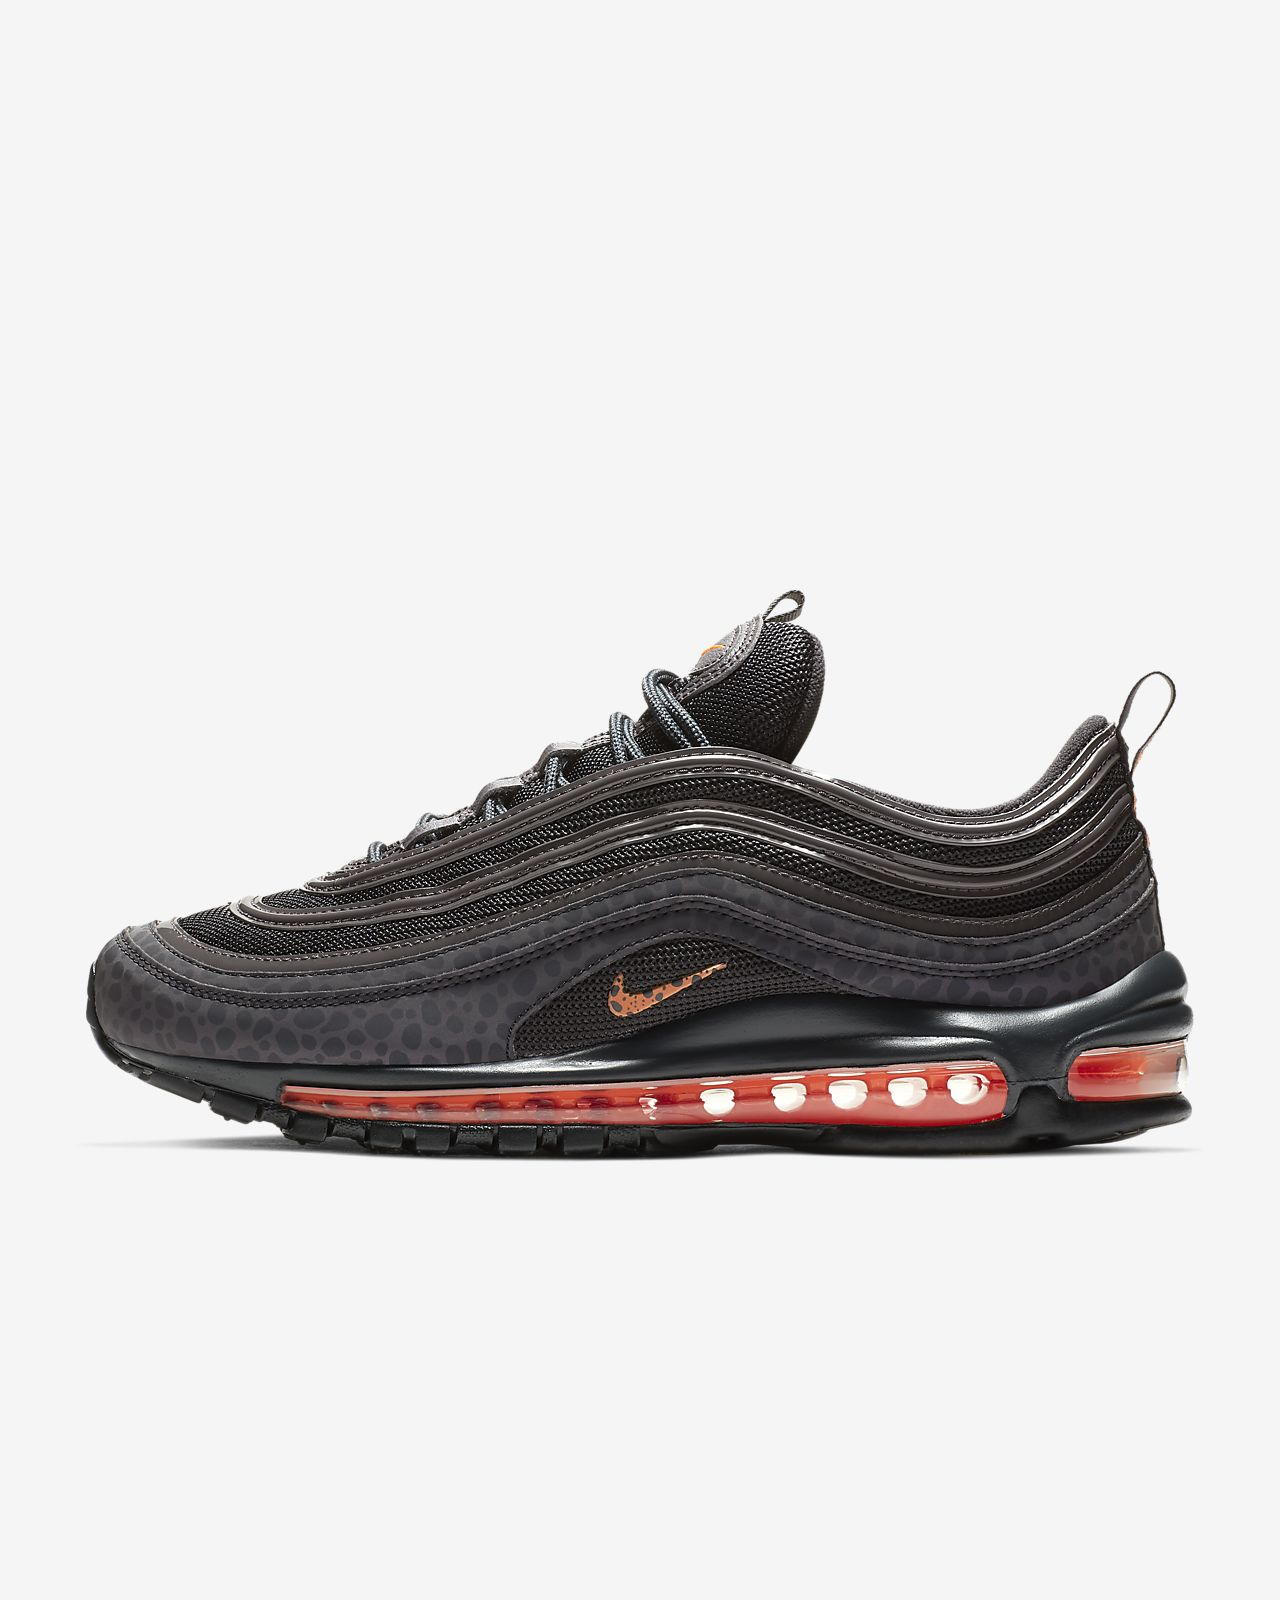 06d4a29433bdbc Nike Air Max 97 SE Reflective Men s Shoe. Nike.com AU